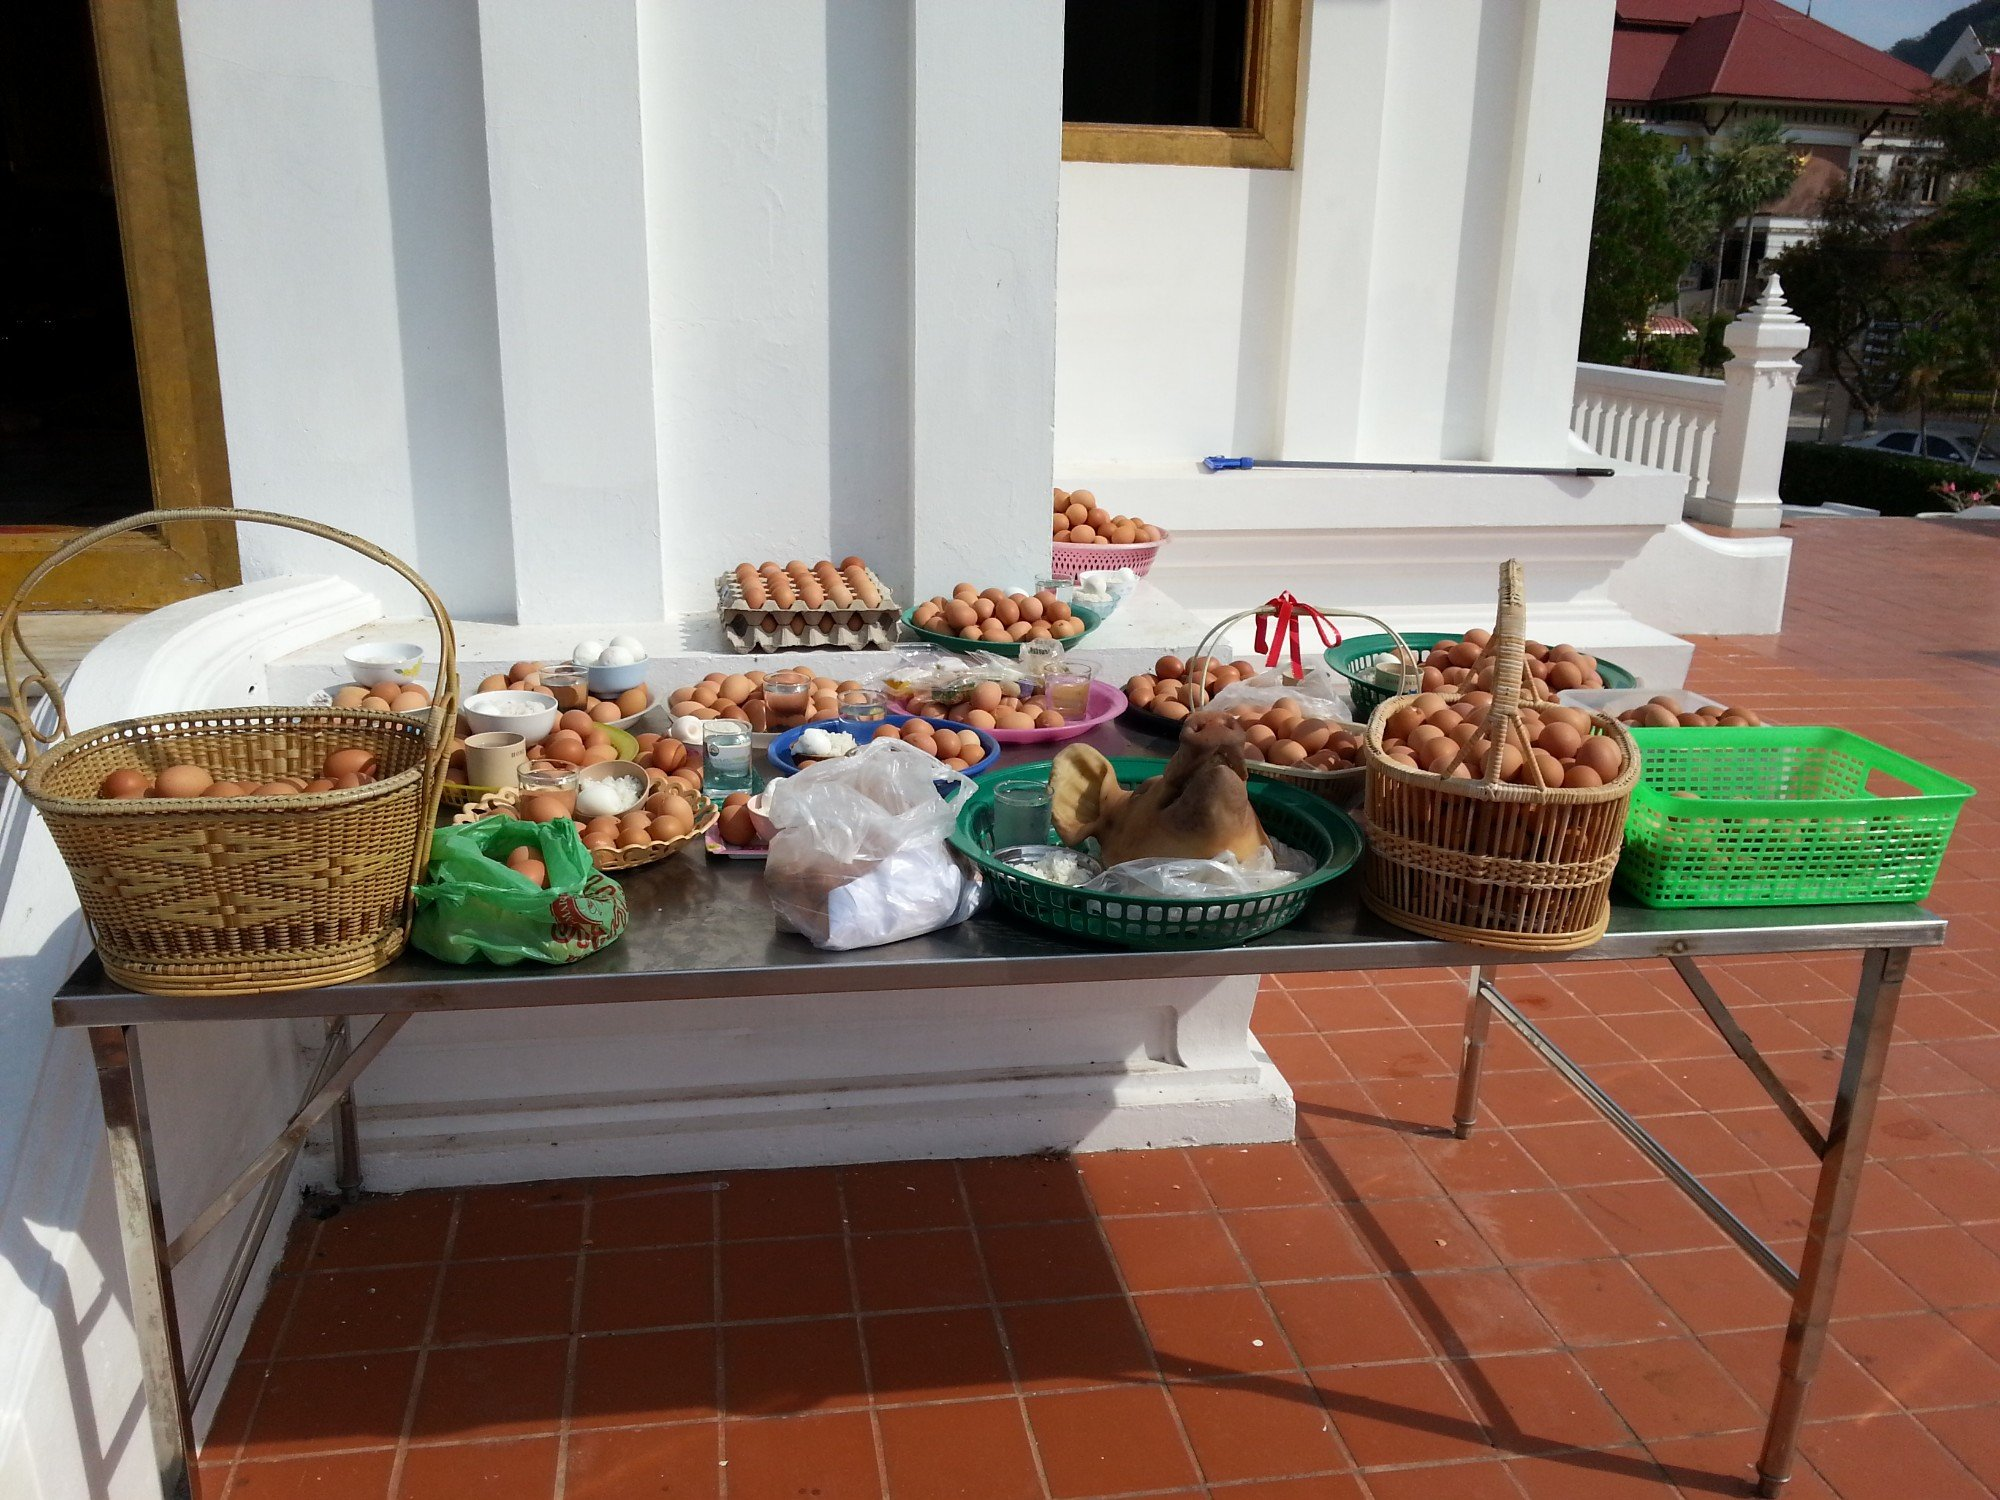 Eggs left as offerings to the Phra Phuttha Nirokhantrai Chaiwat Chaturathit